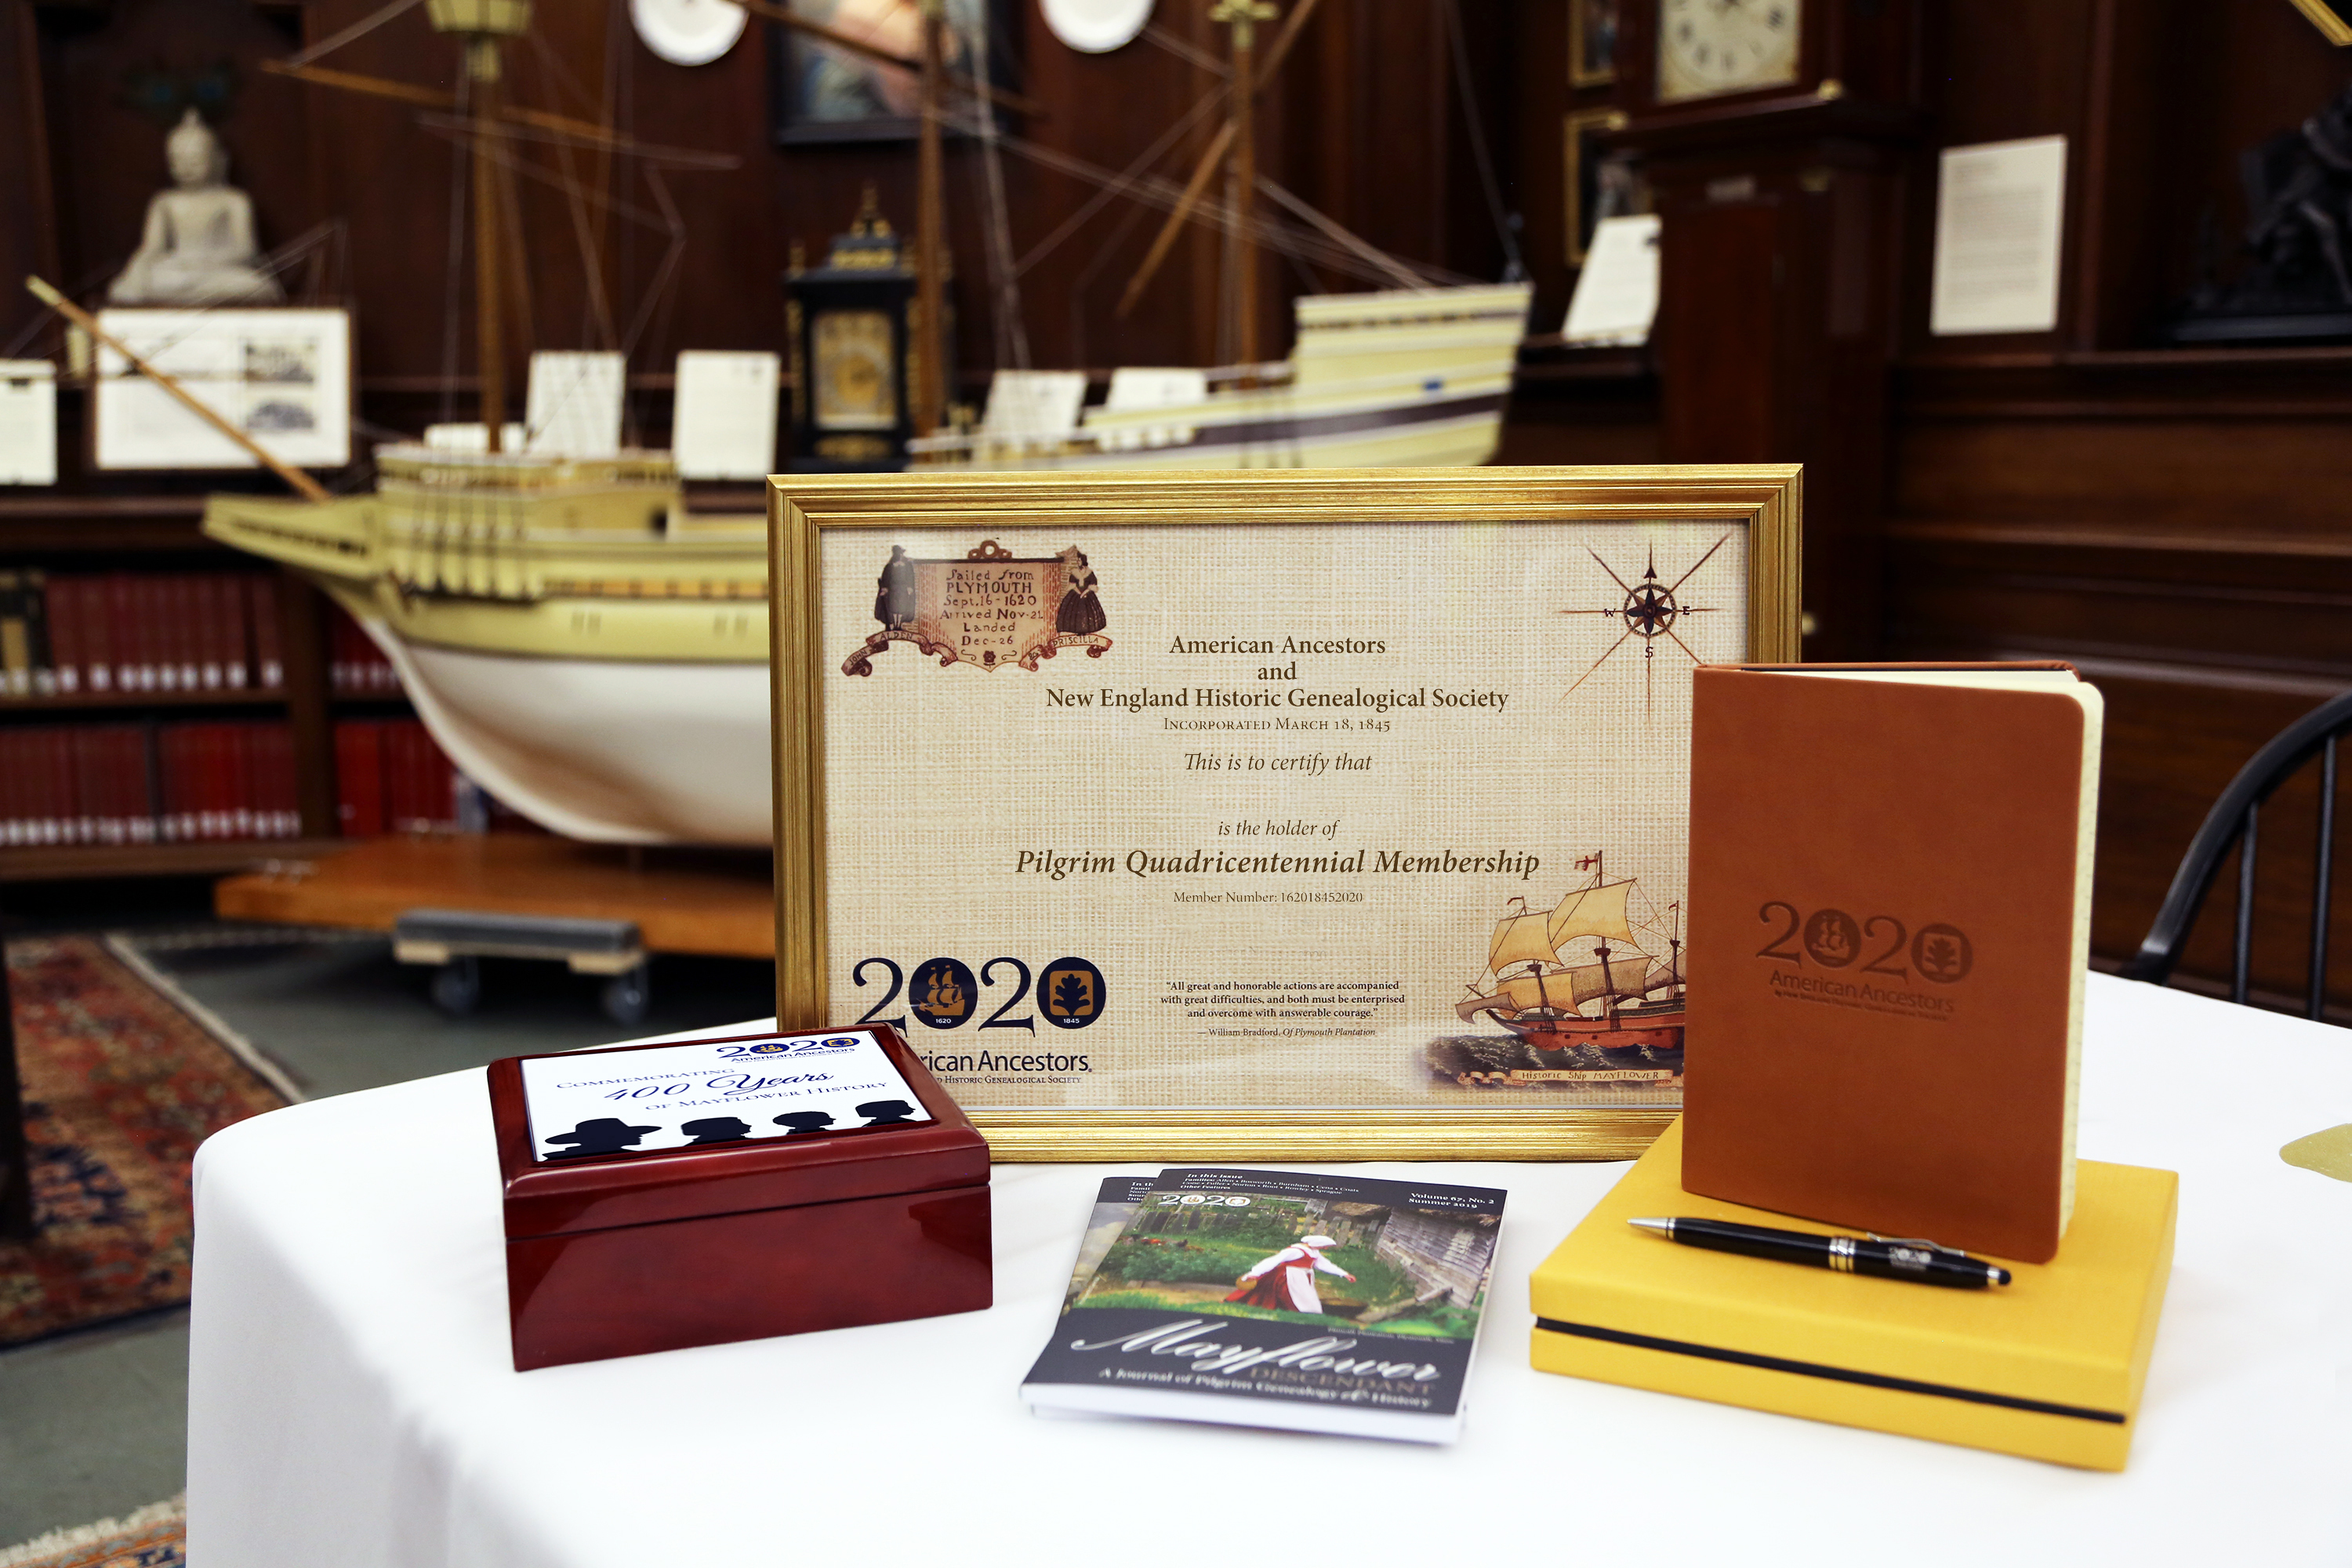 Certificate, leather journal, and keepsake box with Mayflower logo